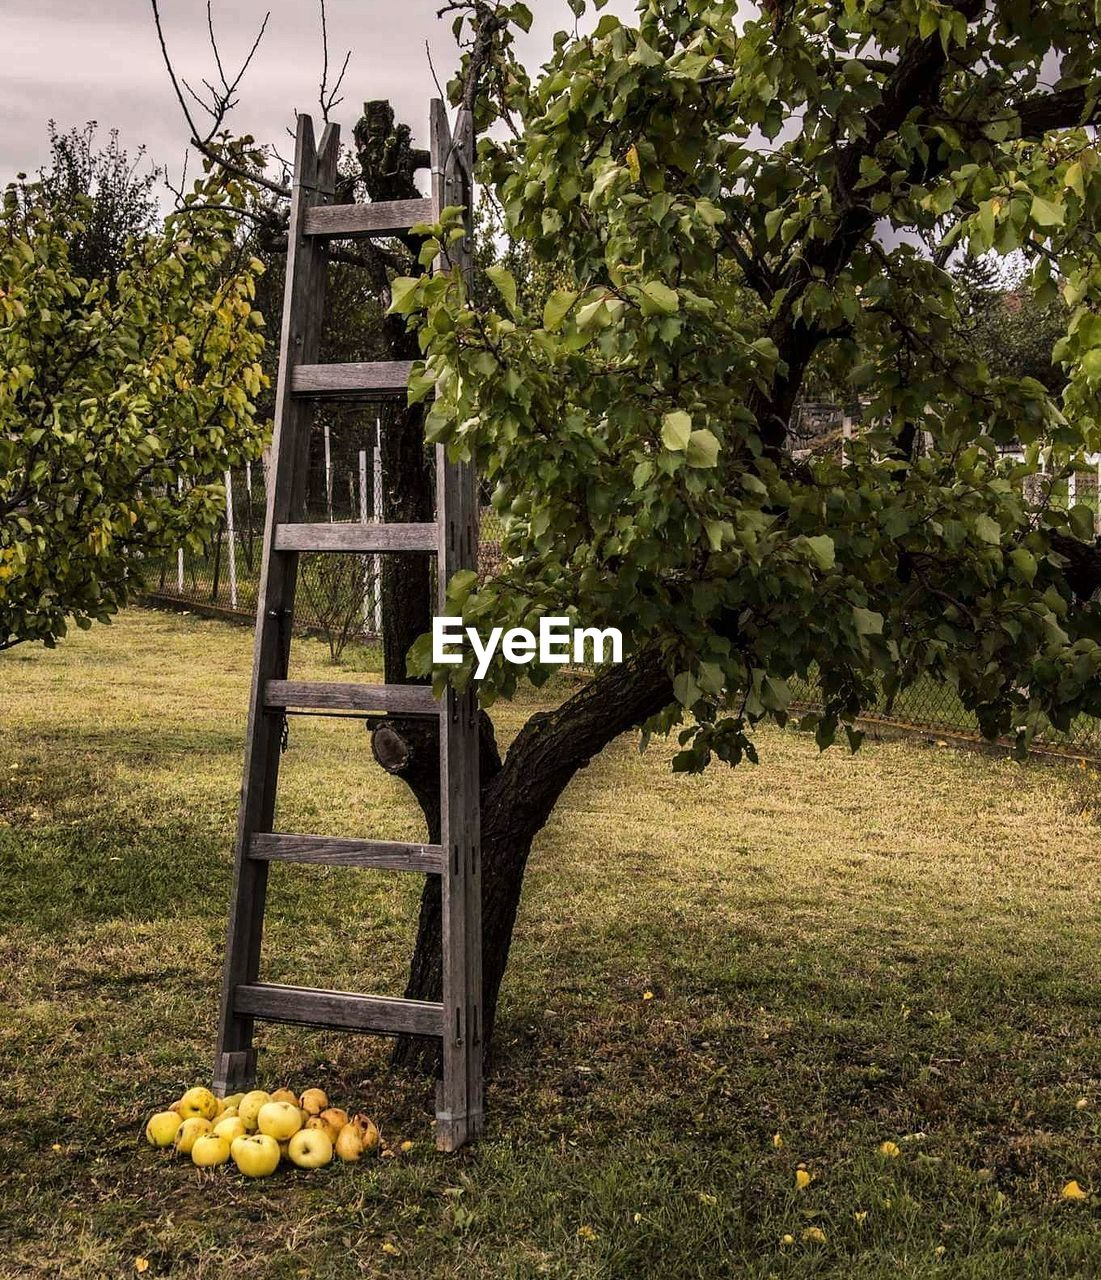 plant, tree, nature, day, fruit, grass, food, food and drink, growth, no people, healthy eating, freshness, outdoors, citrus fruit, fruit tree, green color, architecture, field, built structure, lemon, ladder, orange